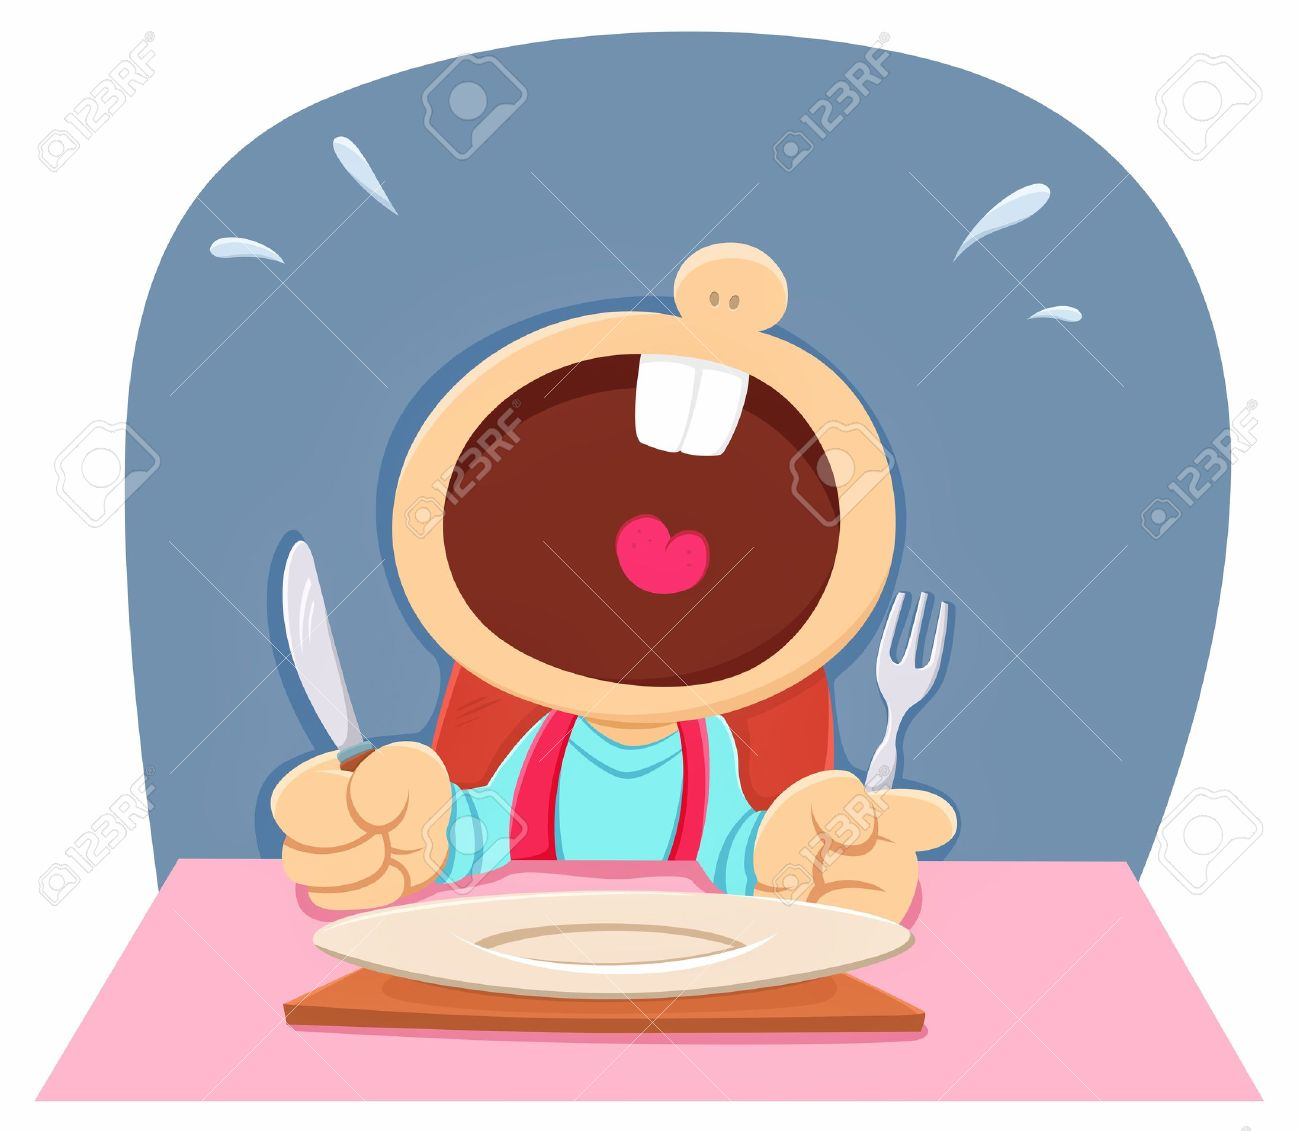 Hungry Child Royalty Free Cliparts, Vectors, And Stock.